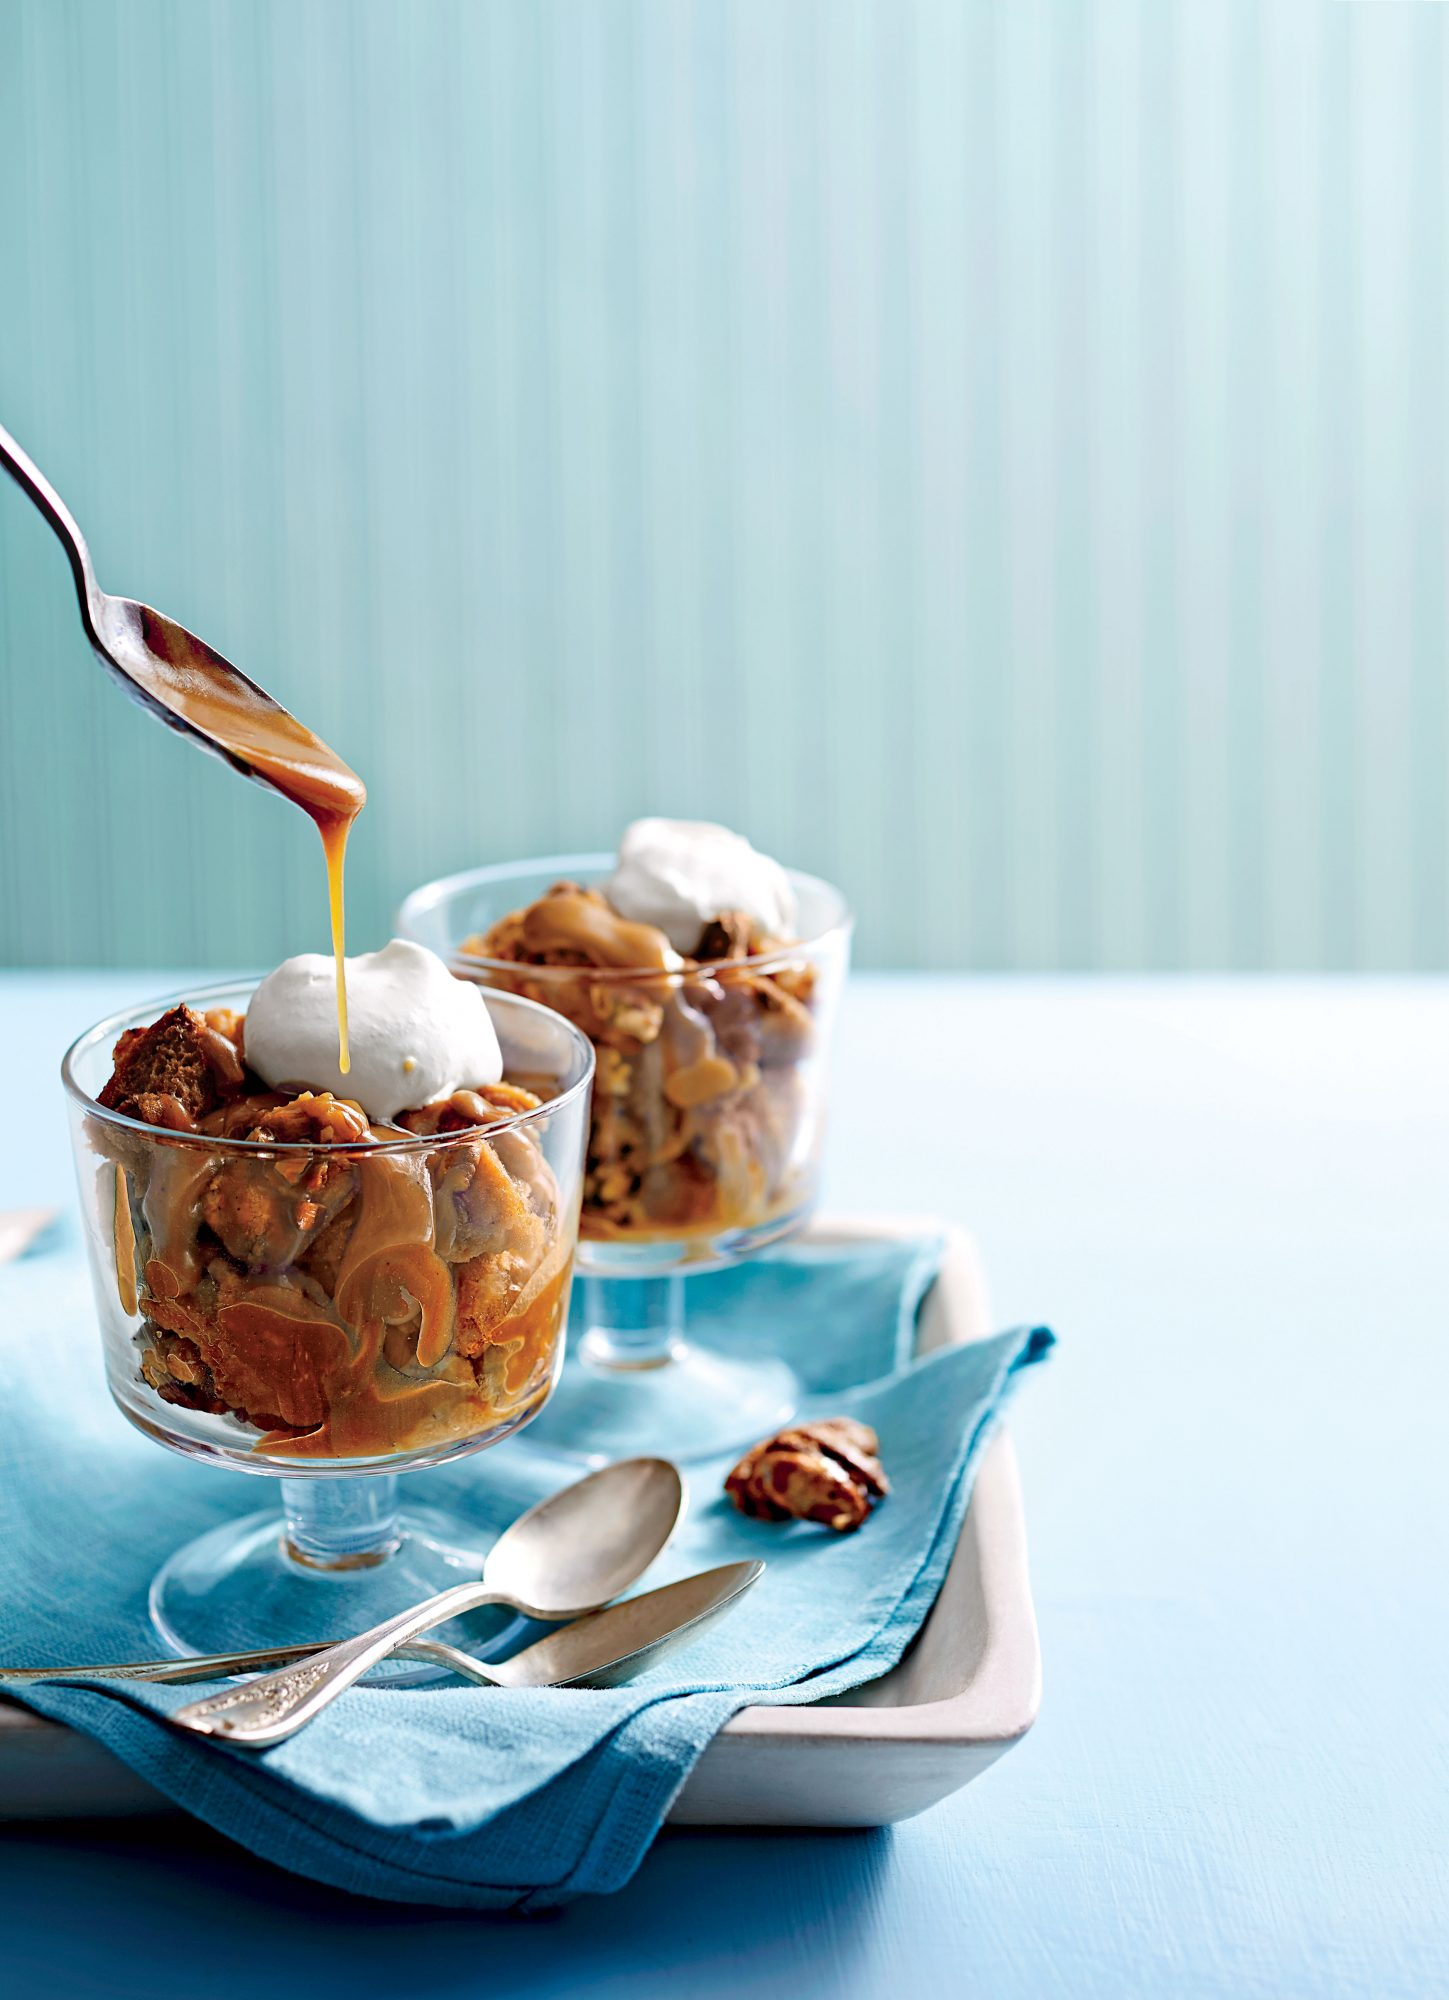 Praline Bread Pudding